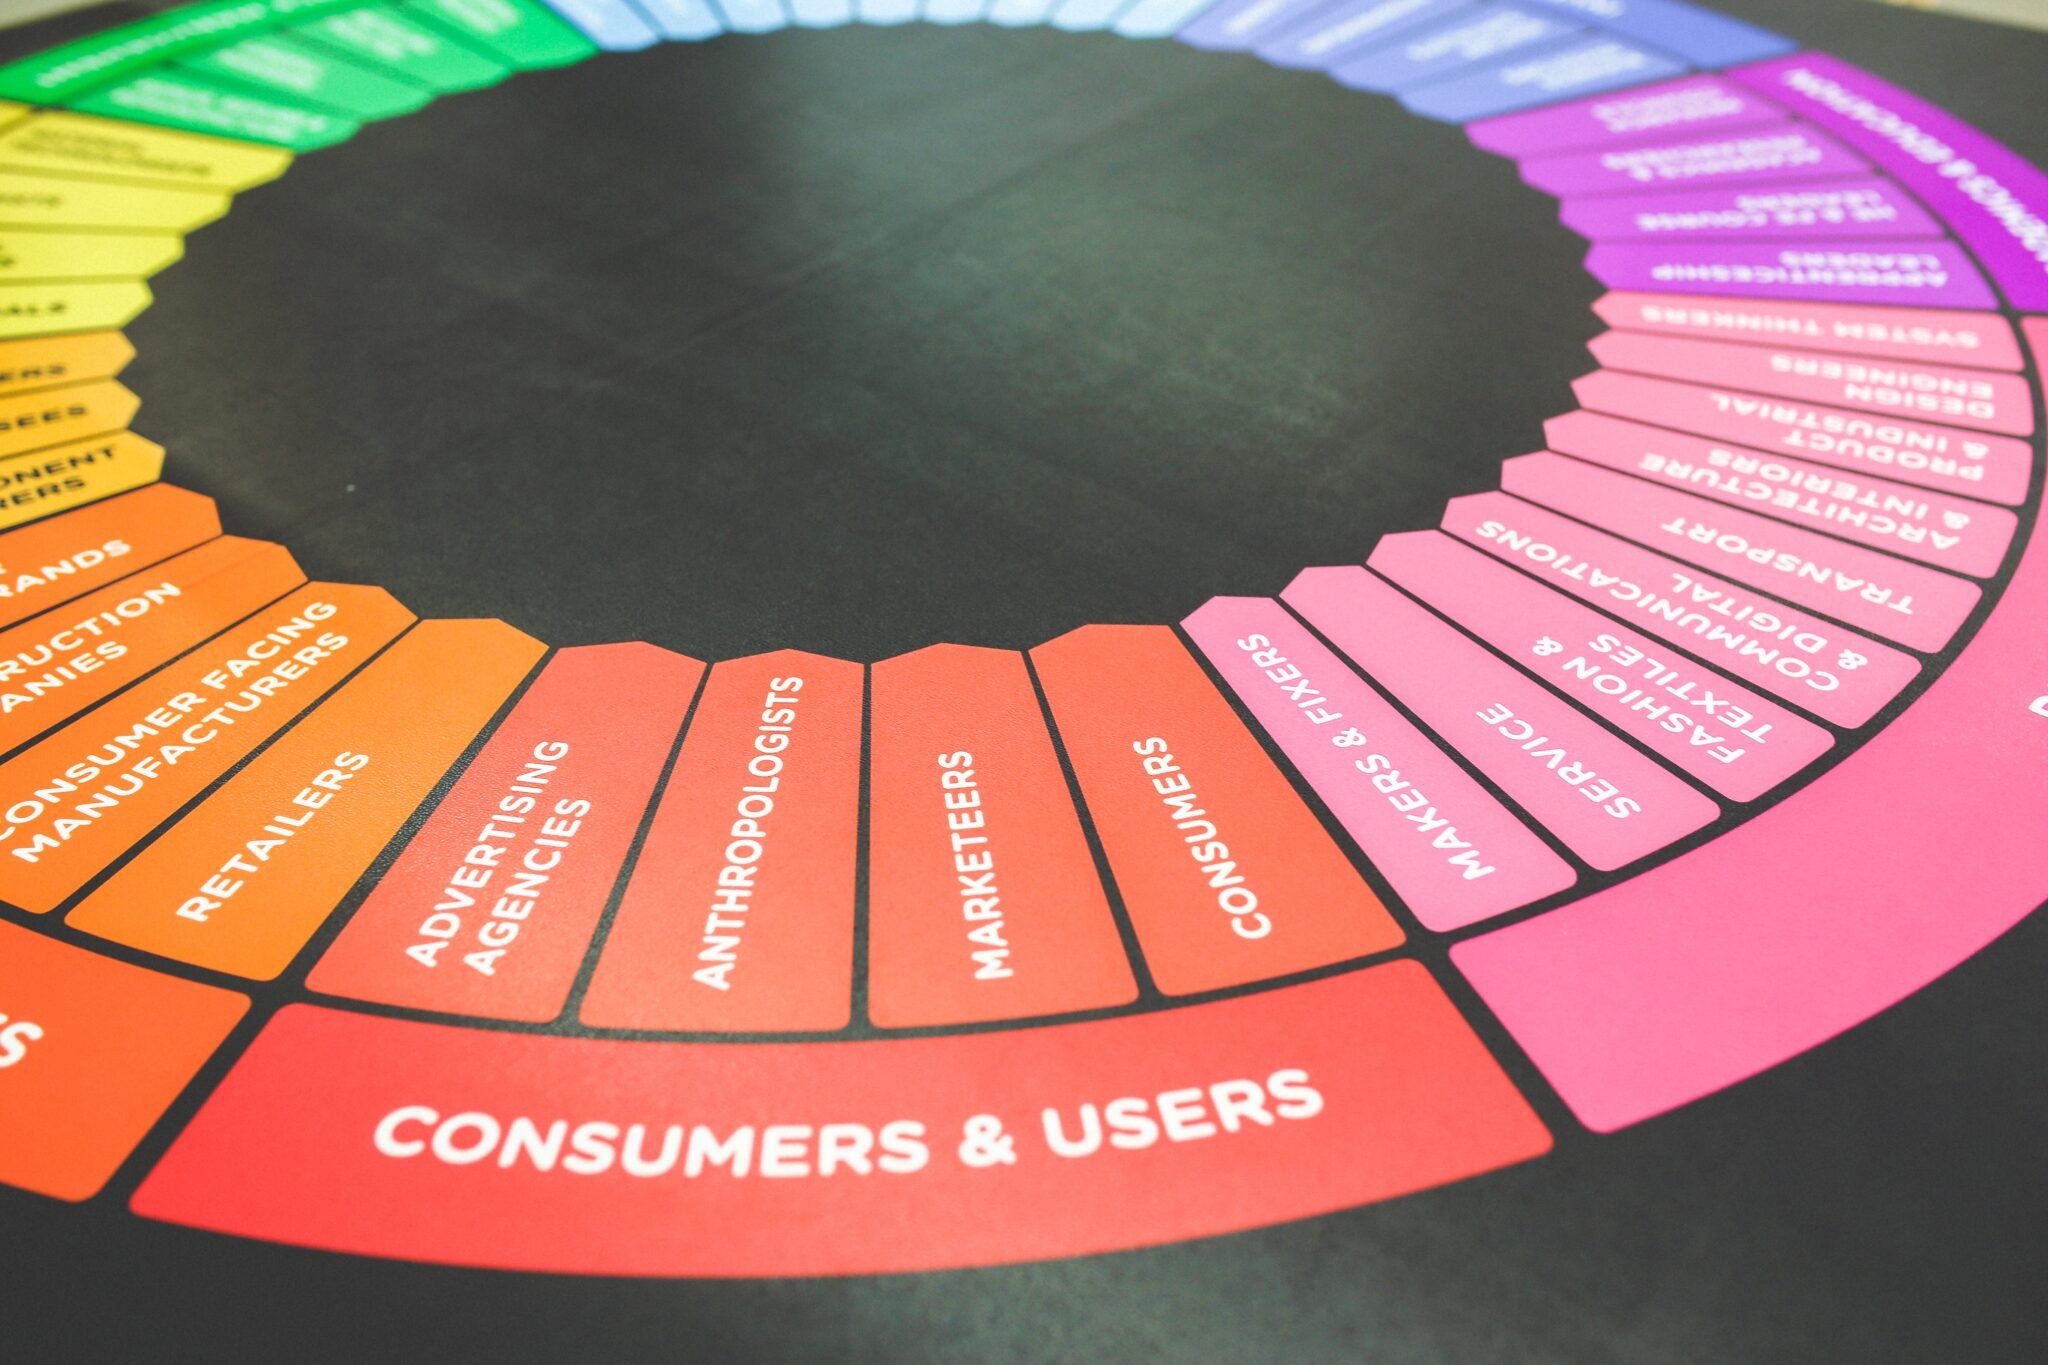 DimNiko | What Is A 360 Marketing Approach?